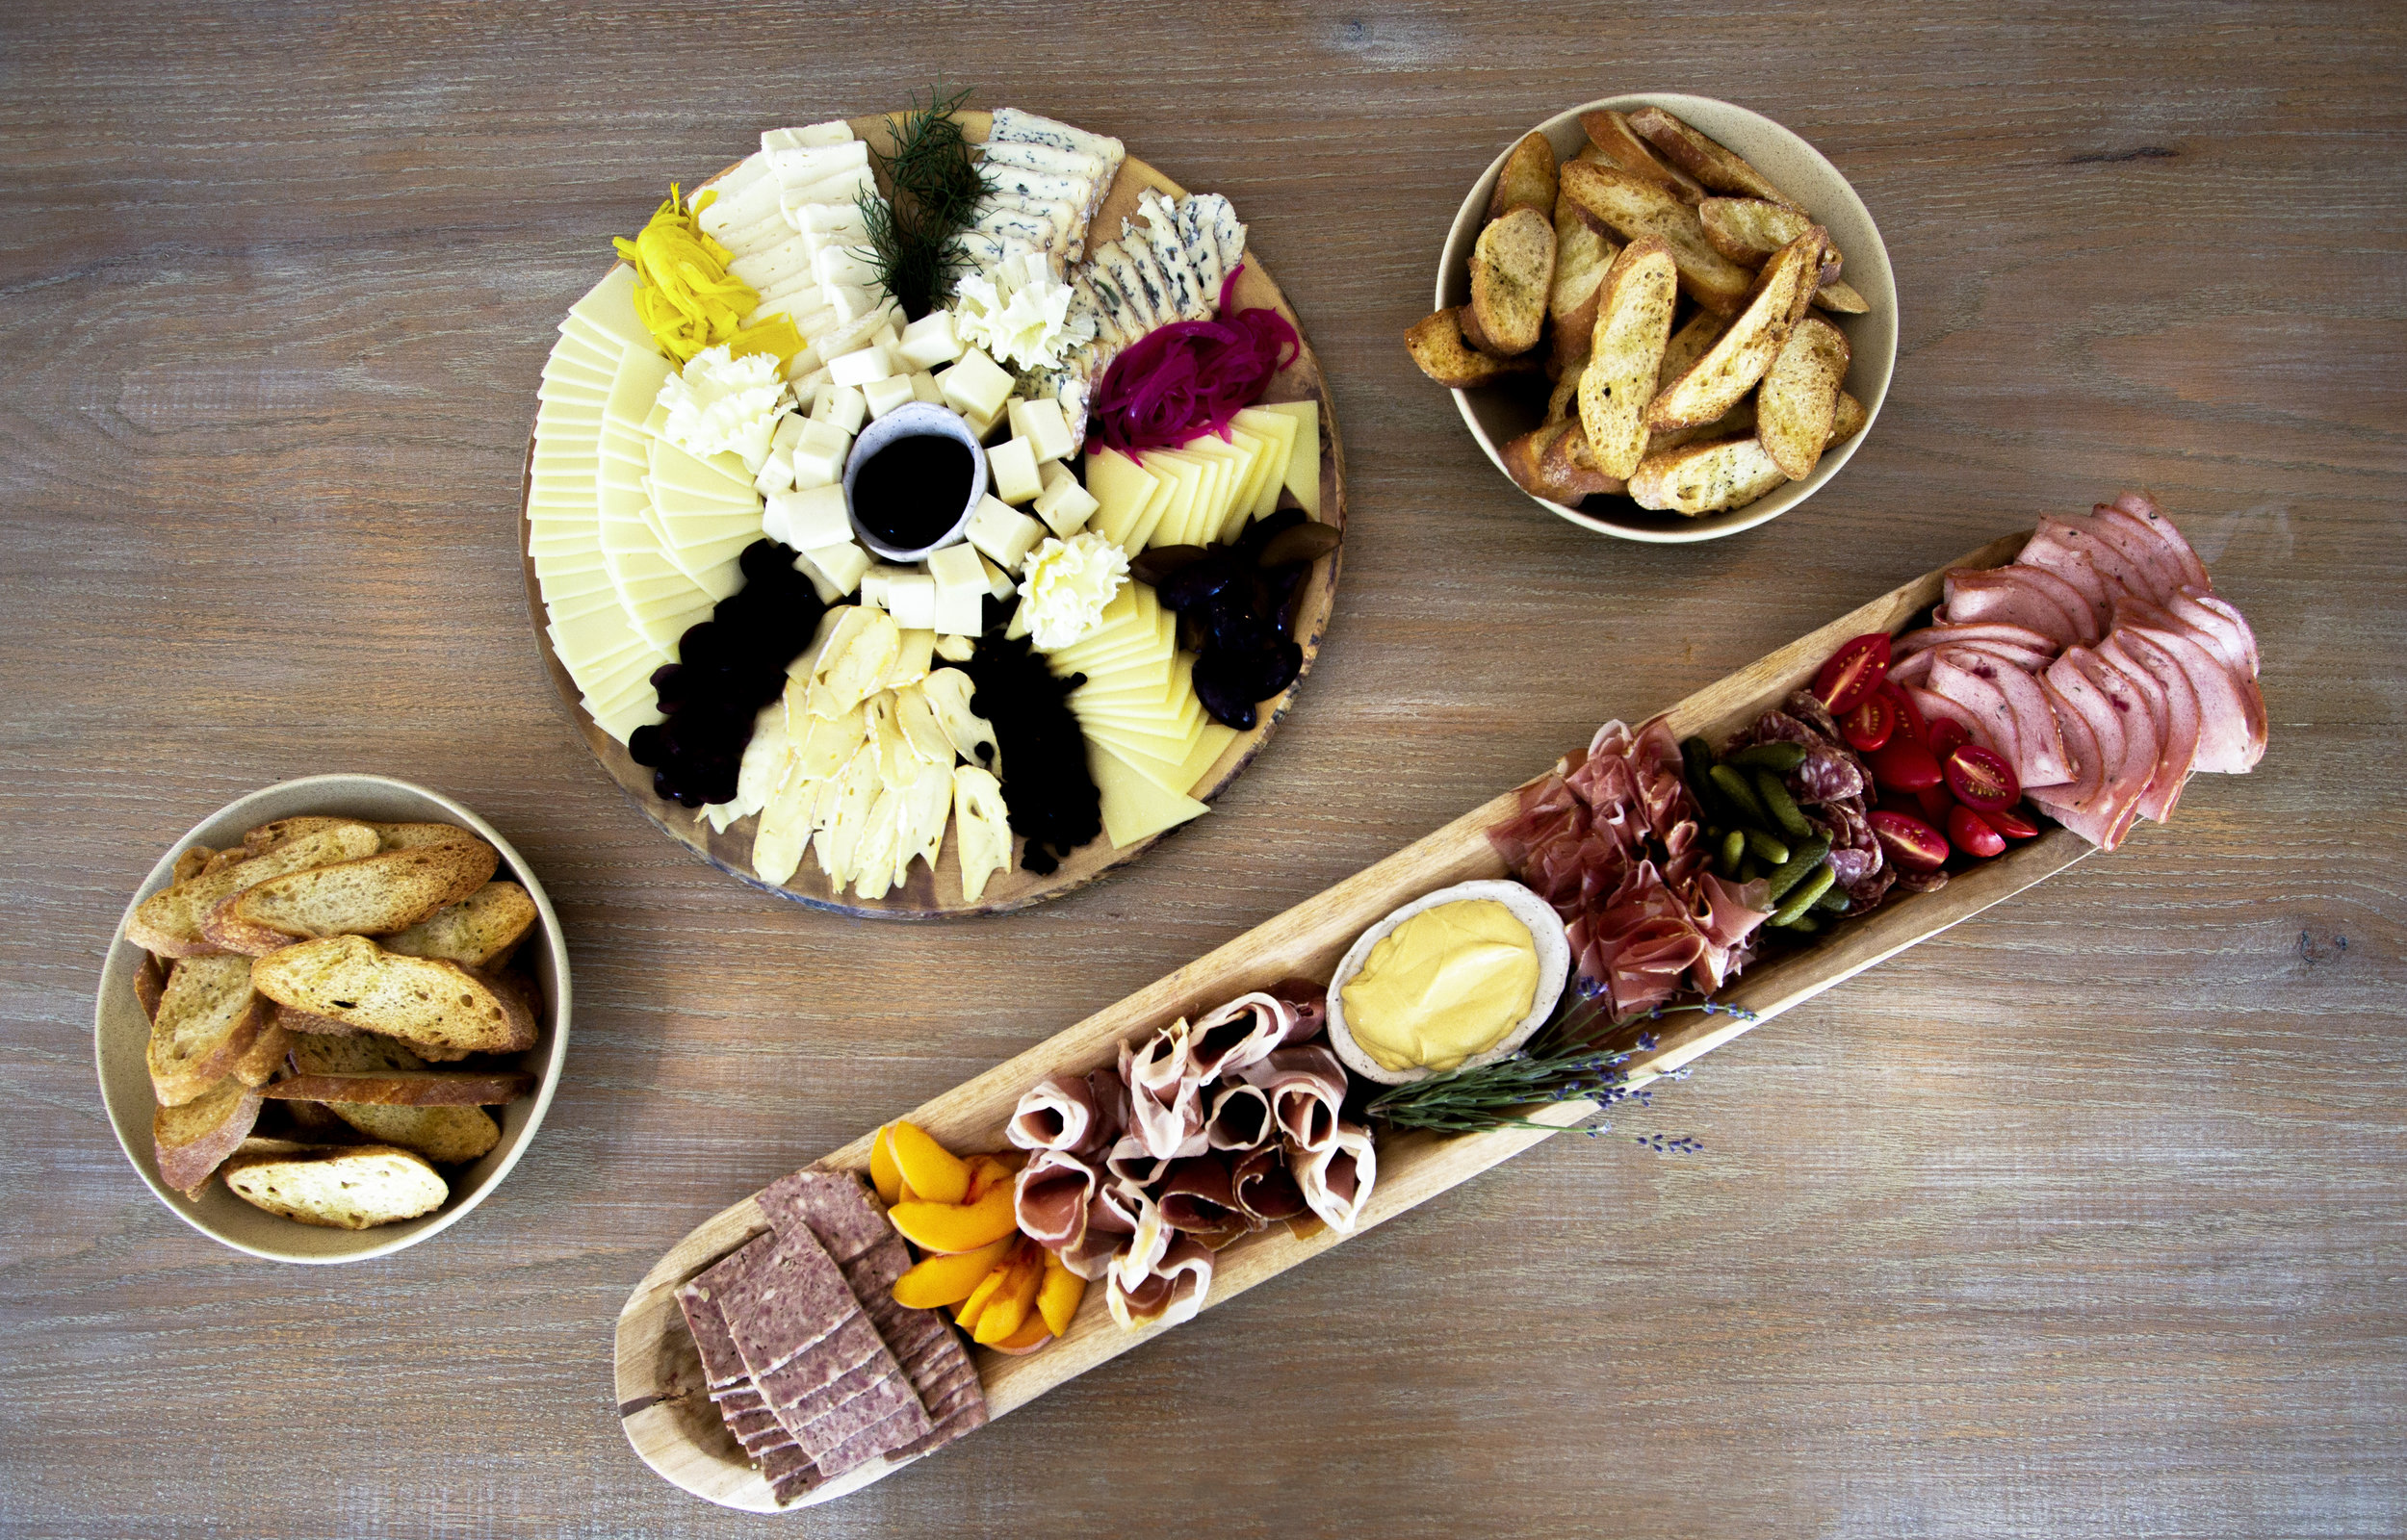 SPECIAL ORDERS - Order some pastries and bagels, or a cheese + charcuterie platter for your special event! Check out all of our catering options below and send us a message to place your order.